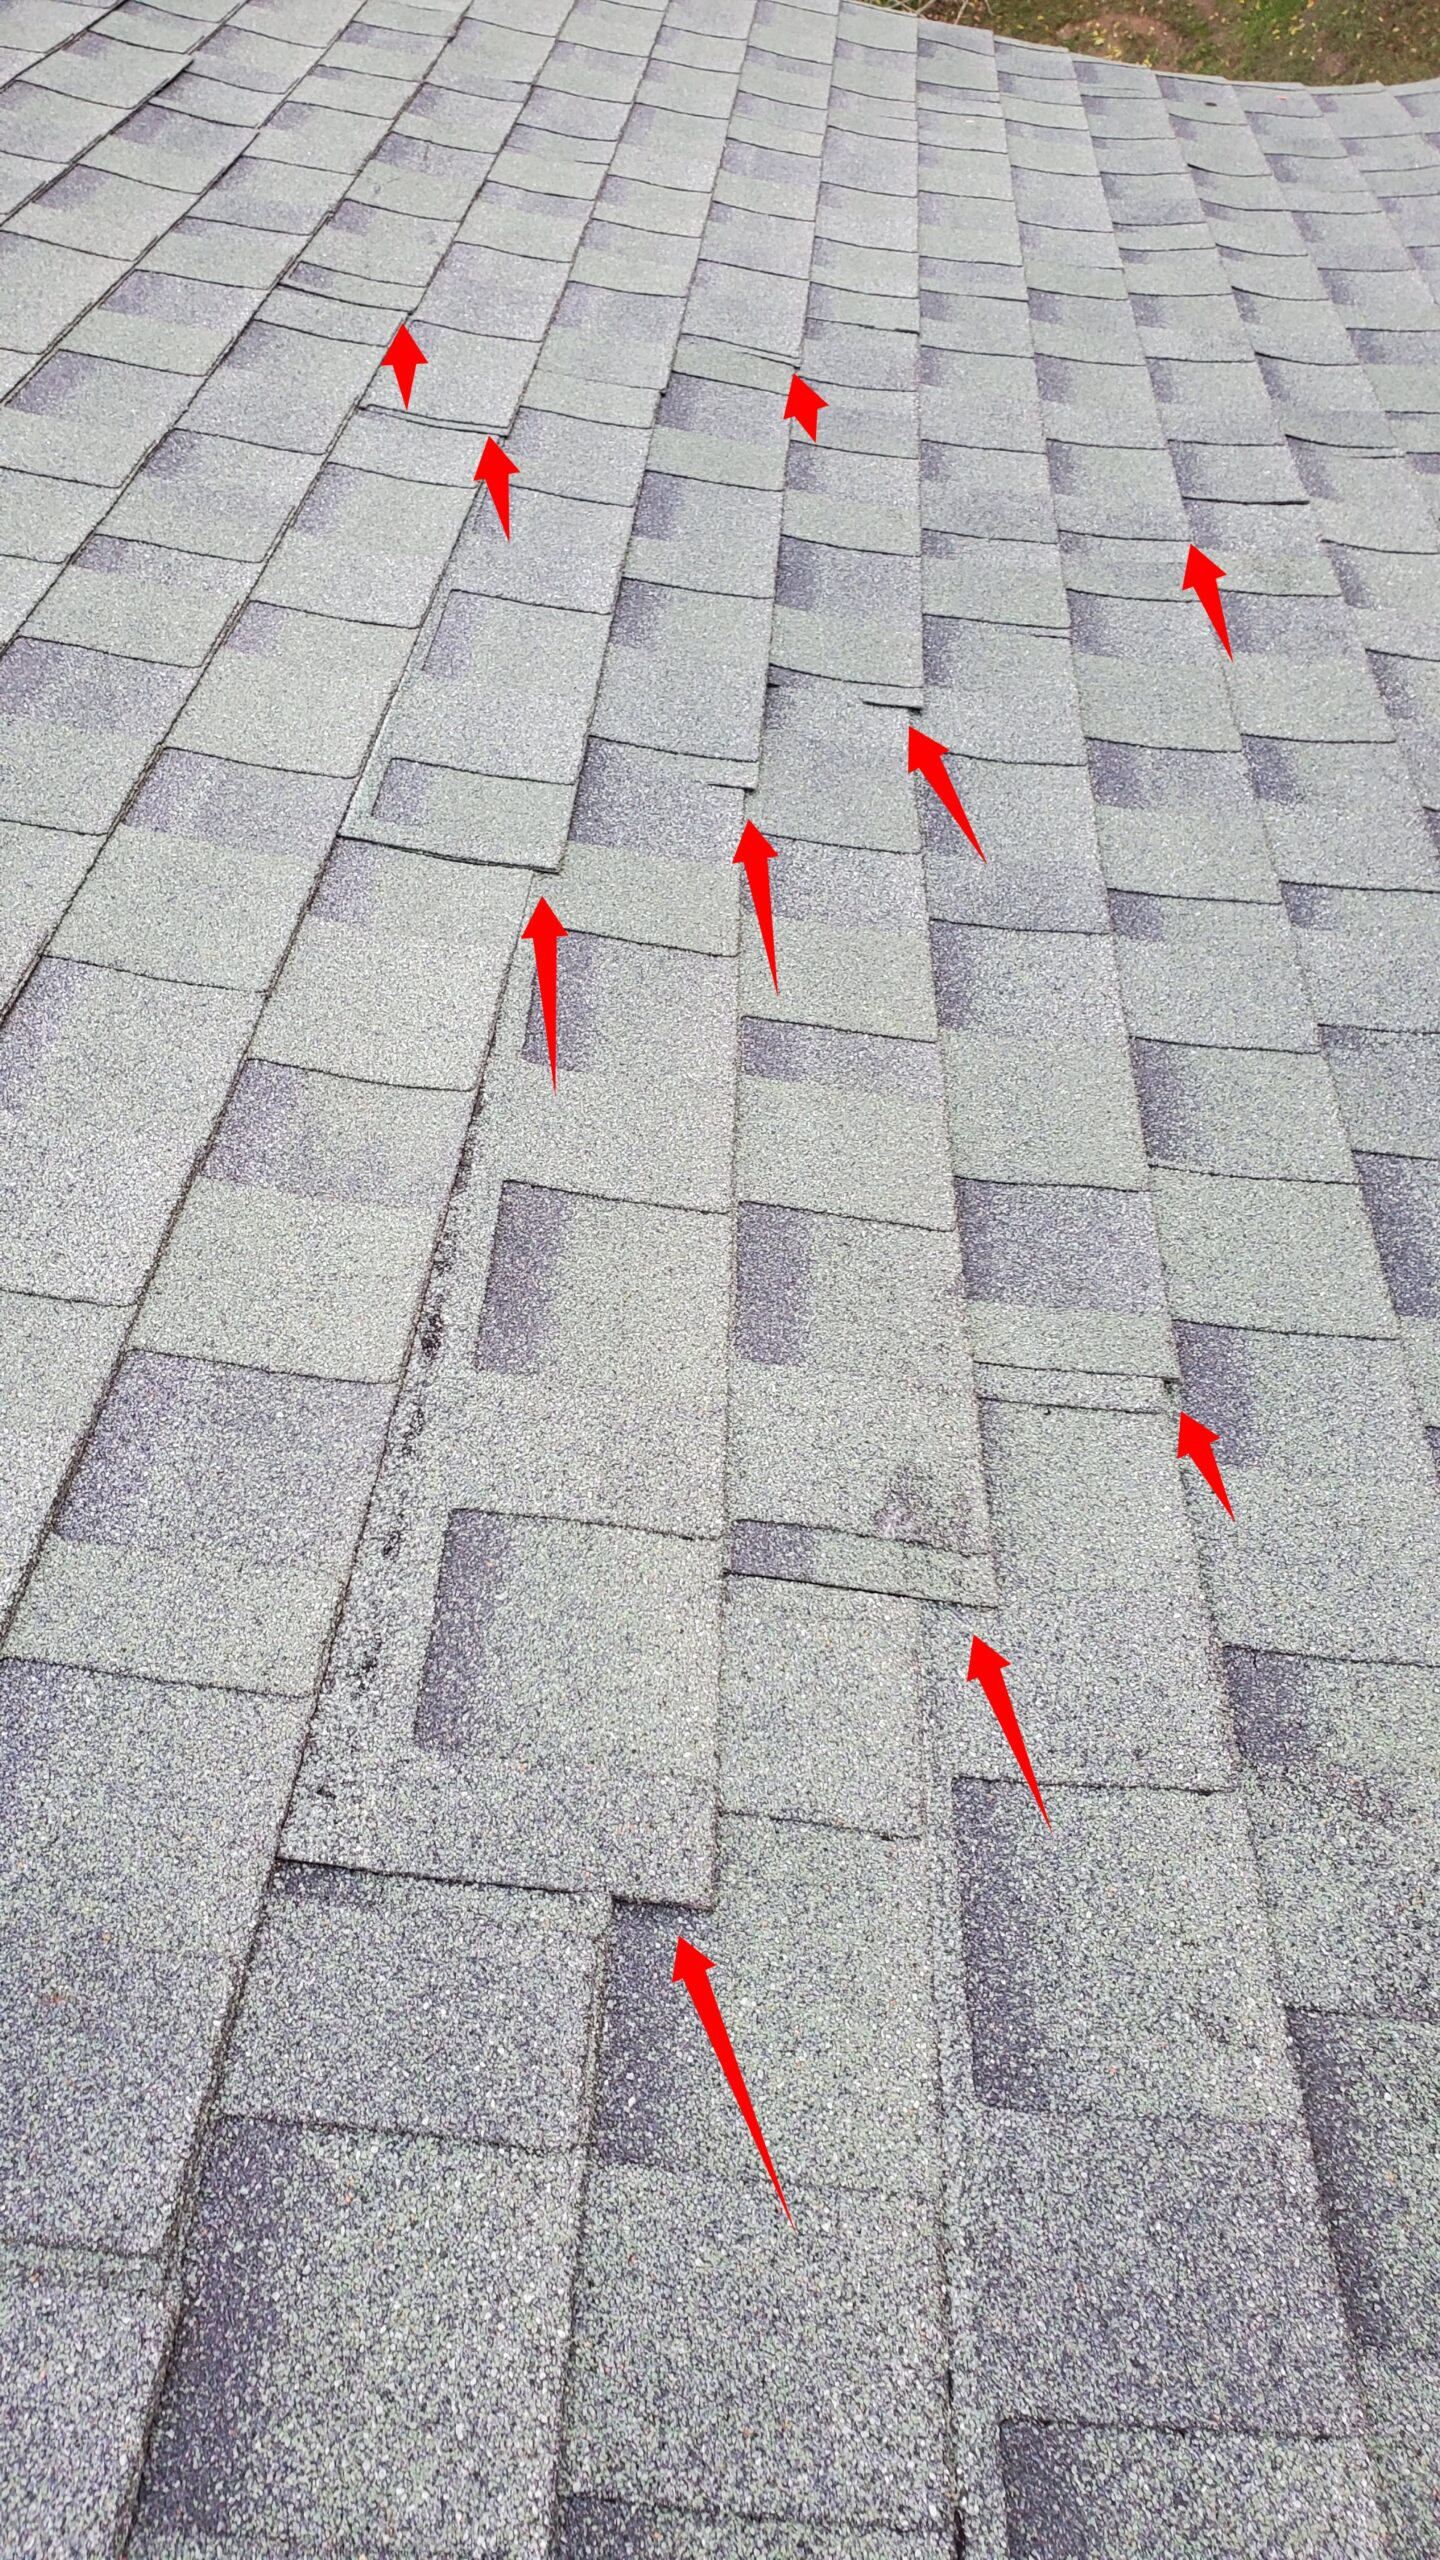 This is a picture of s green shingle roof with red arrows all over it, pointing to shingles that are sliding down the roof